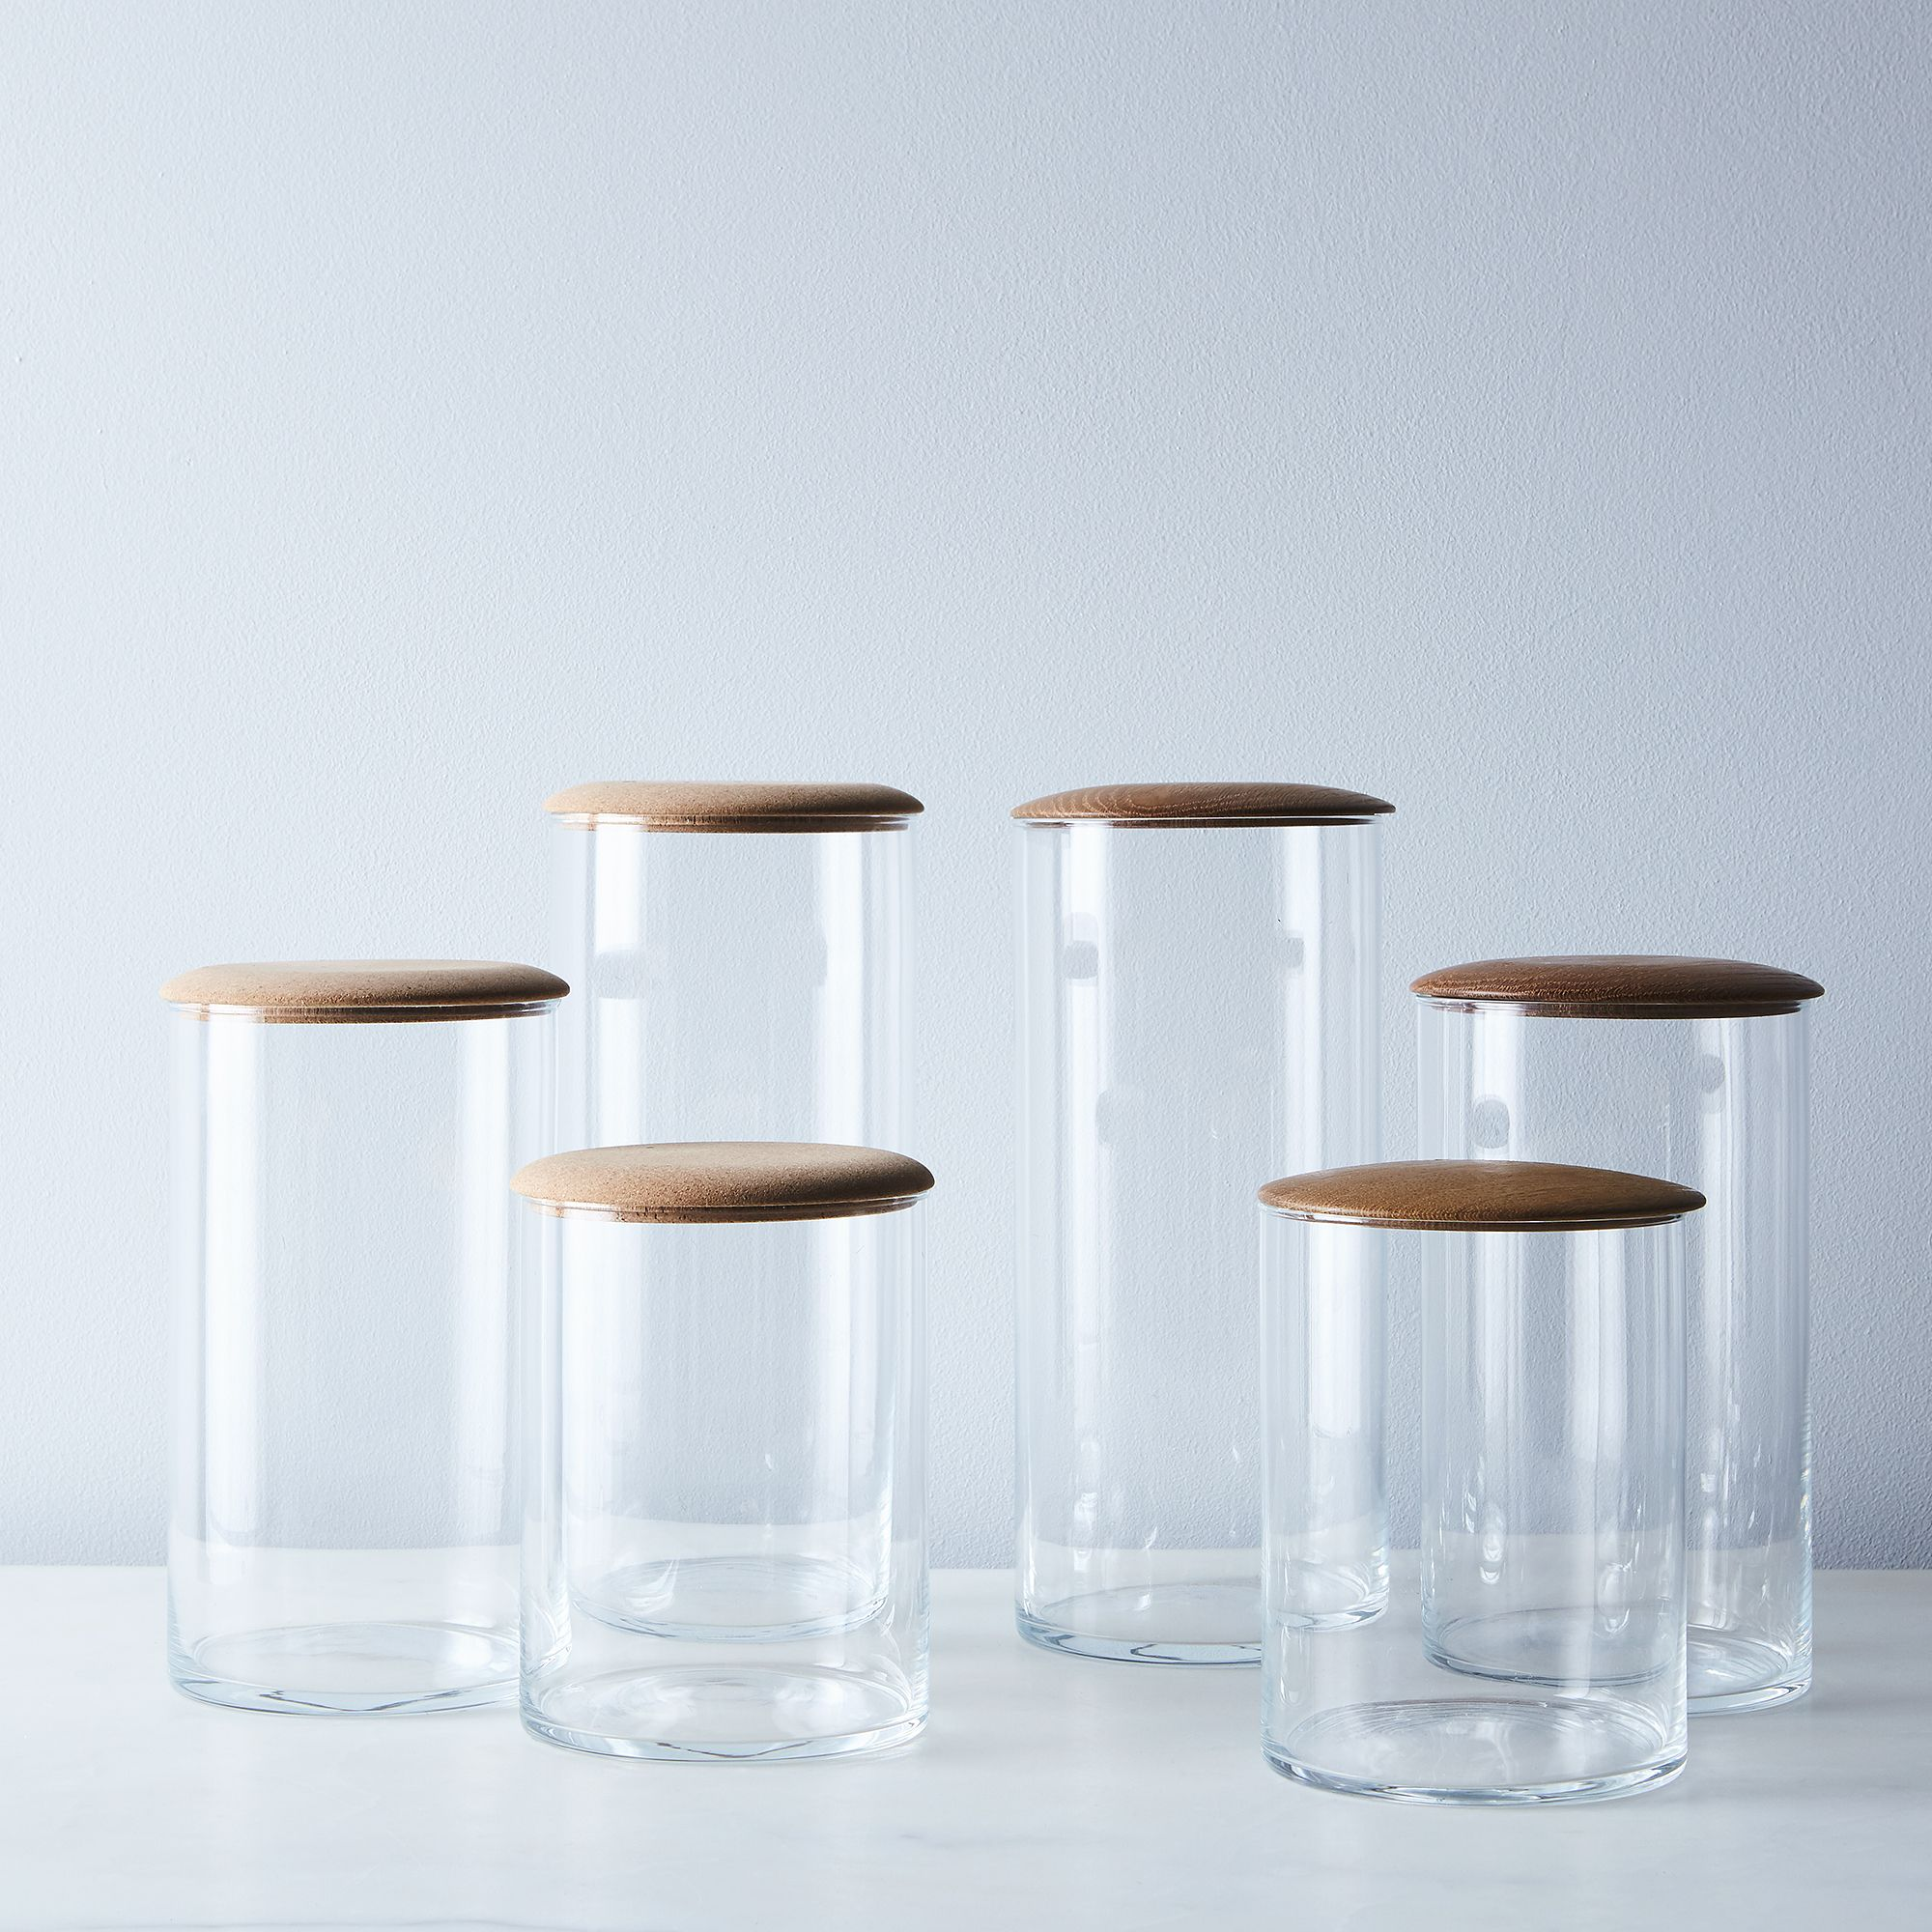 10cf4aba-442d-4c40-a60f-0ad76ea77a40--2016-1216_hawkins-new-york_glass-and-cork-simple-storage-containers_family_silo_rocky-luten_192.jpg